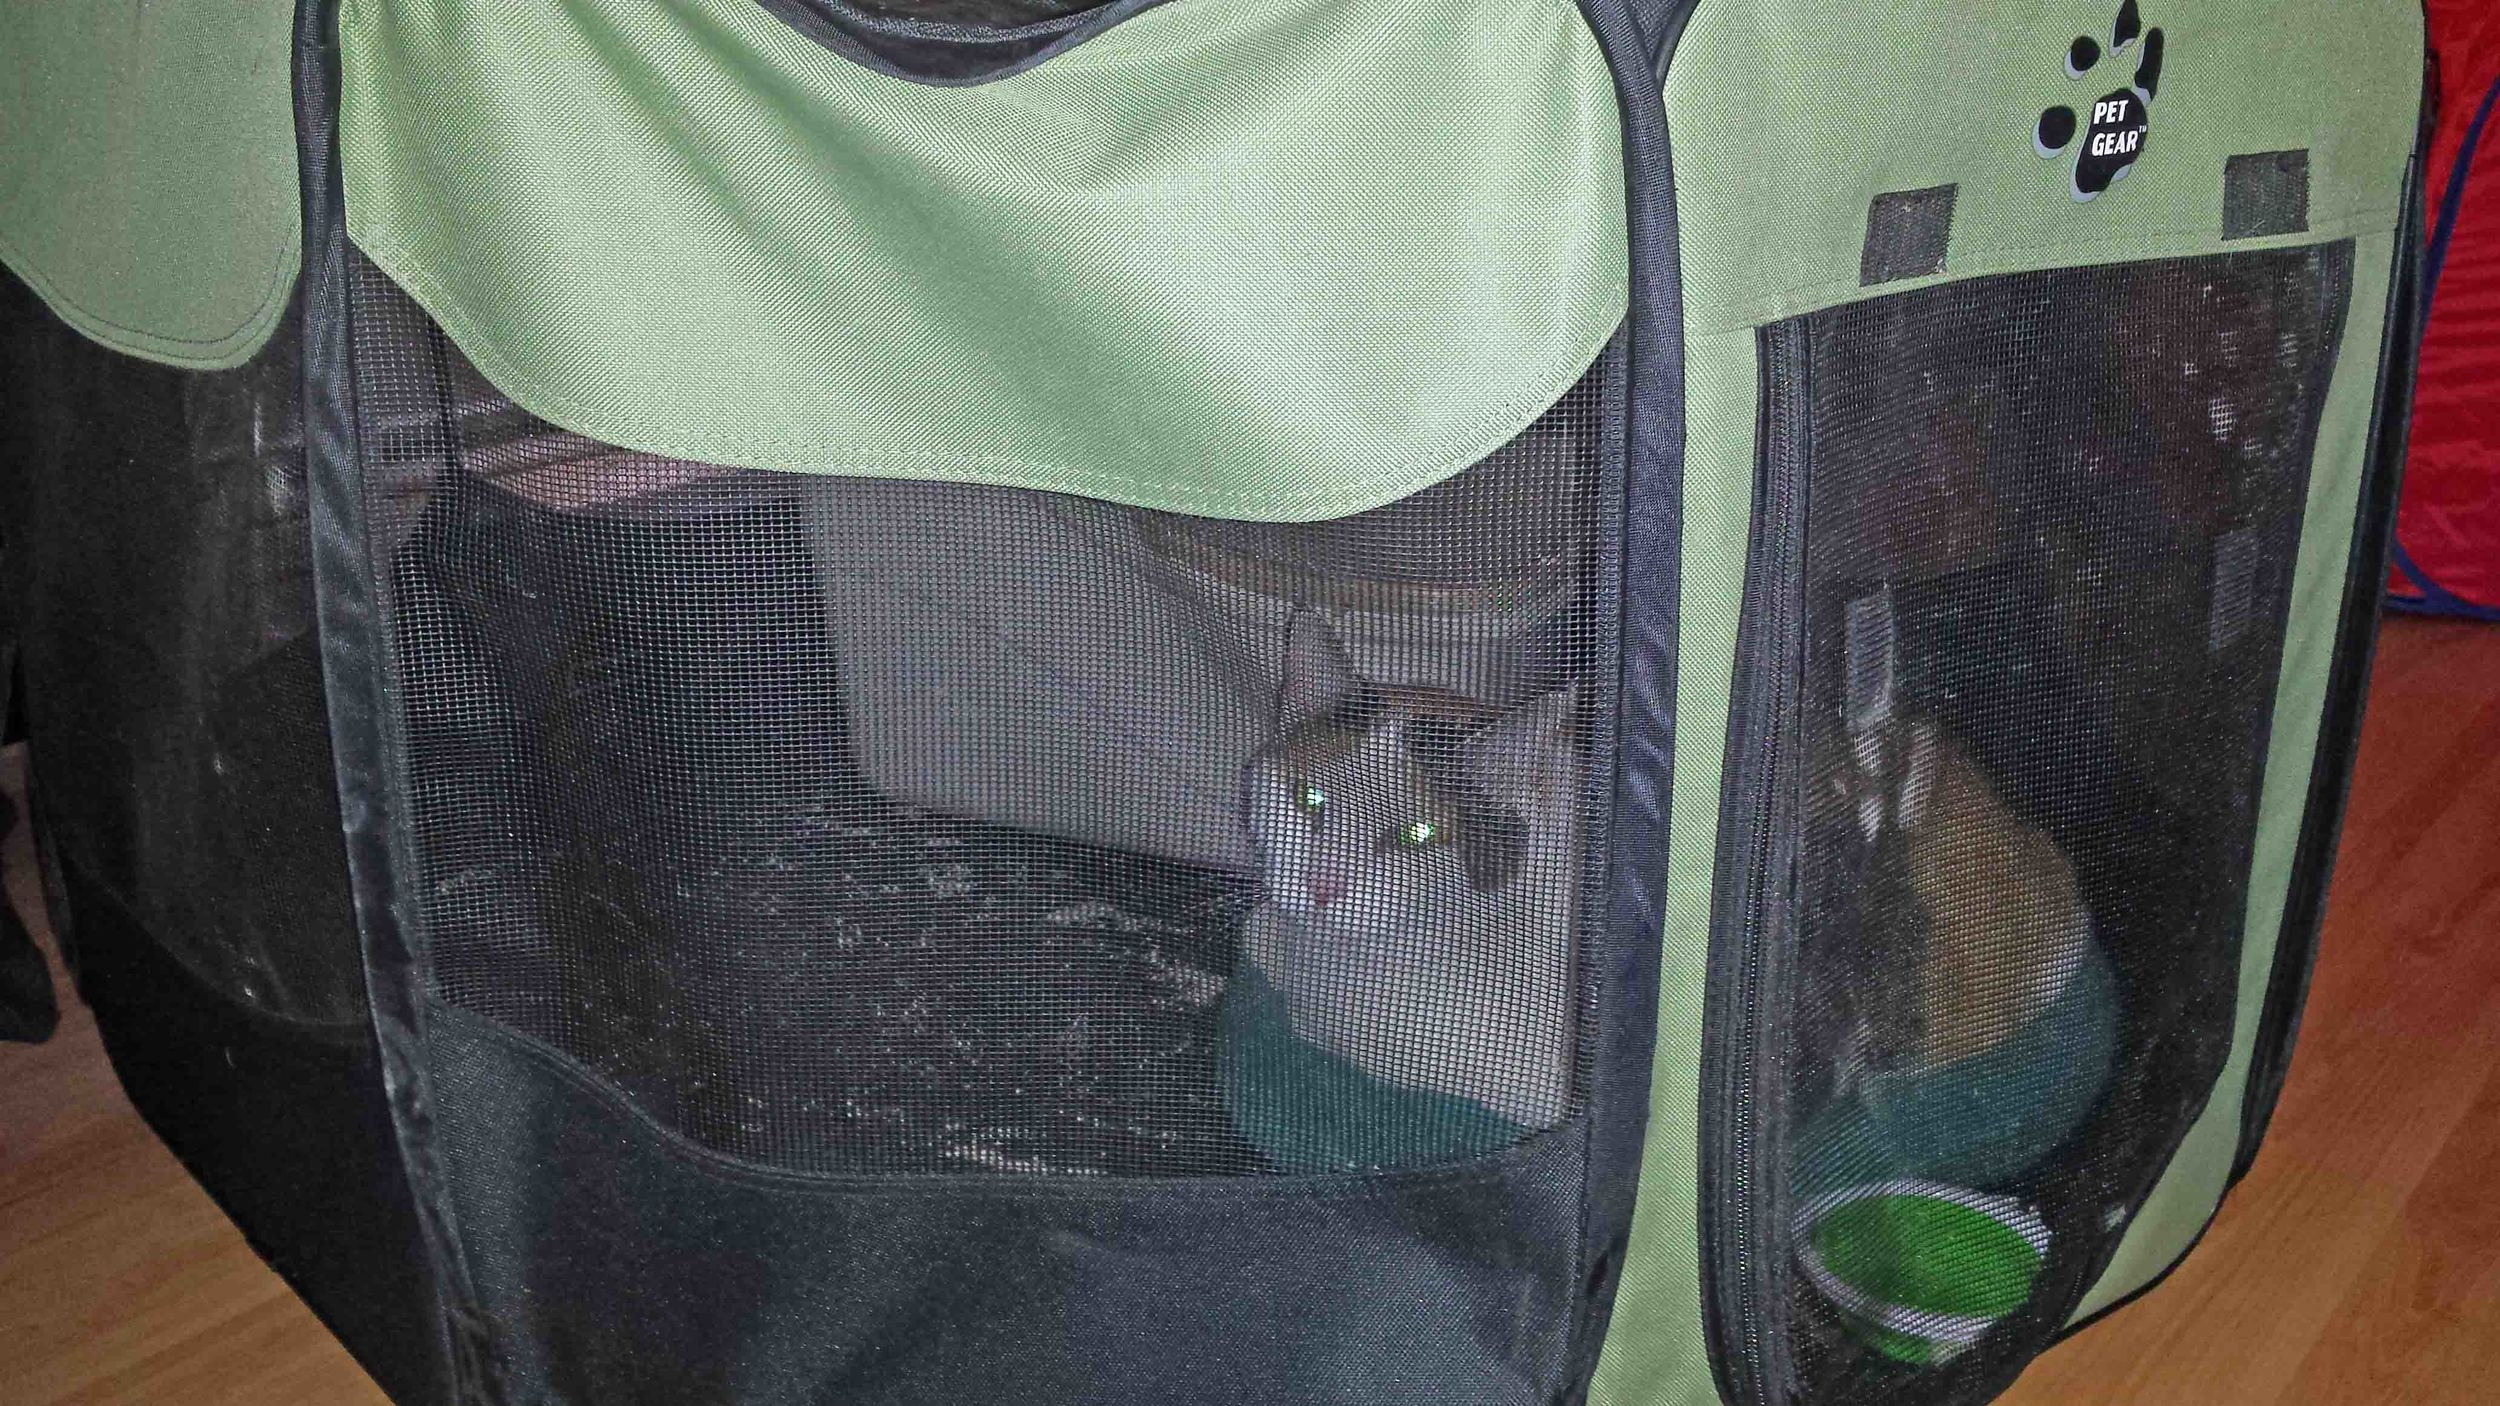 Tia goes camping. This is her condo, after being in the small to-go bag for the evacuation trip. These fold out pet soft-sided playpens are perfect!